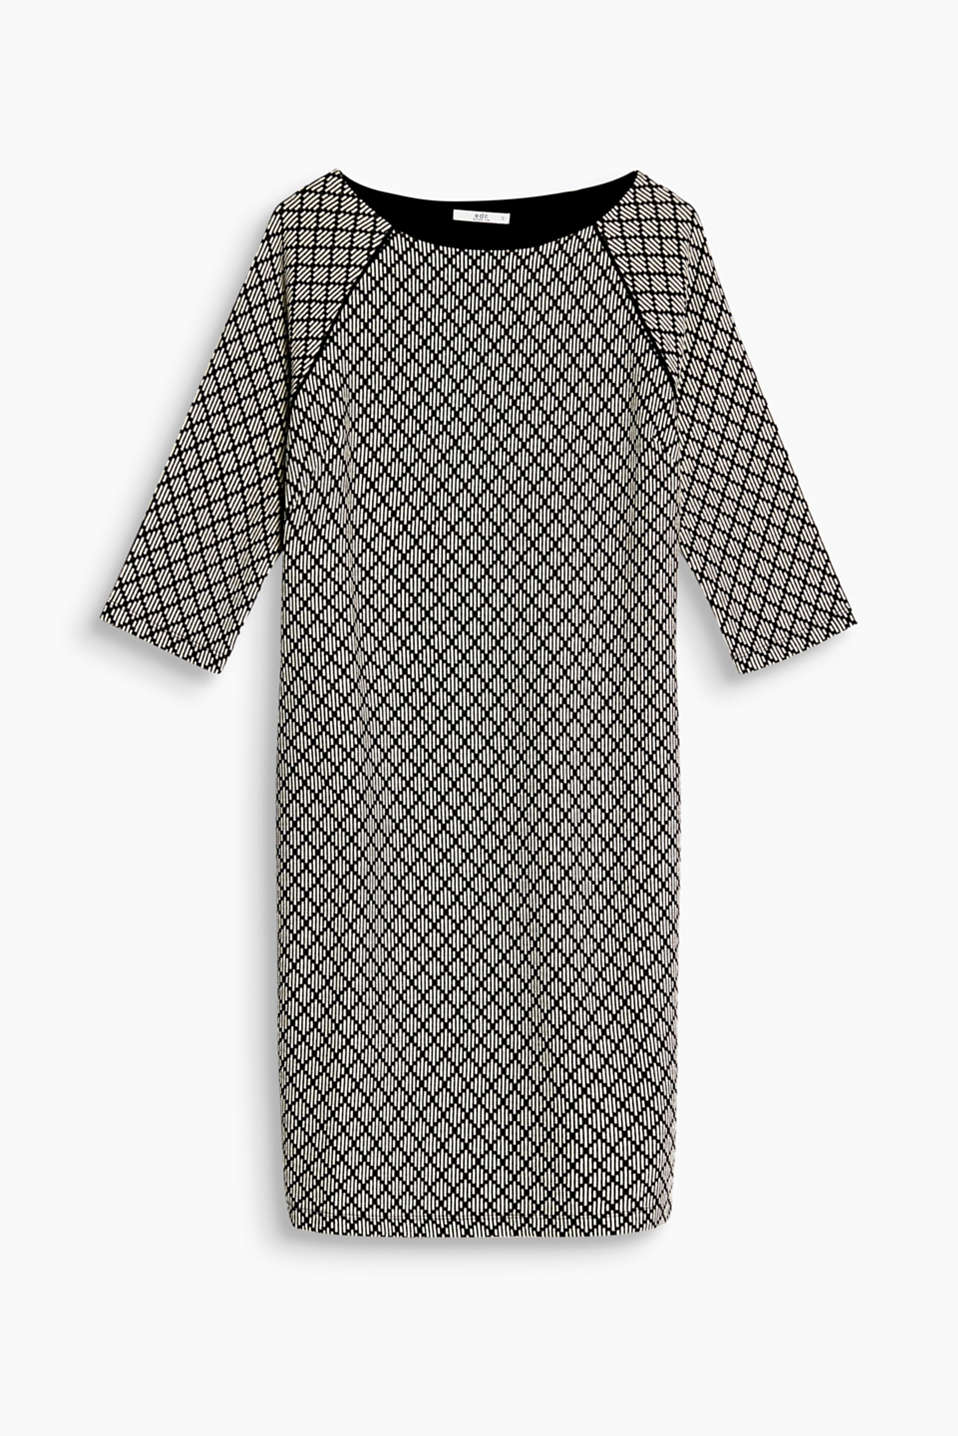 We love black and white! This dress boasts a minimalist pattern that is very striking!